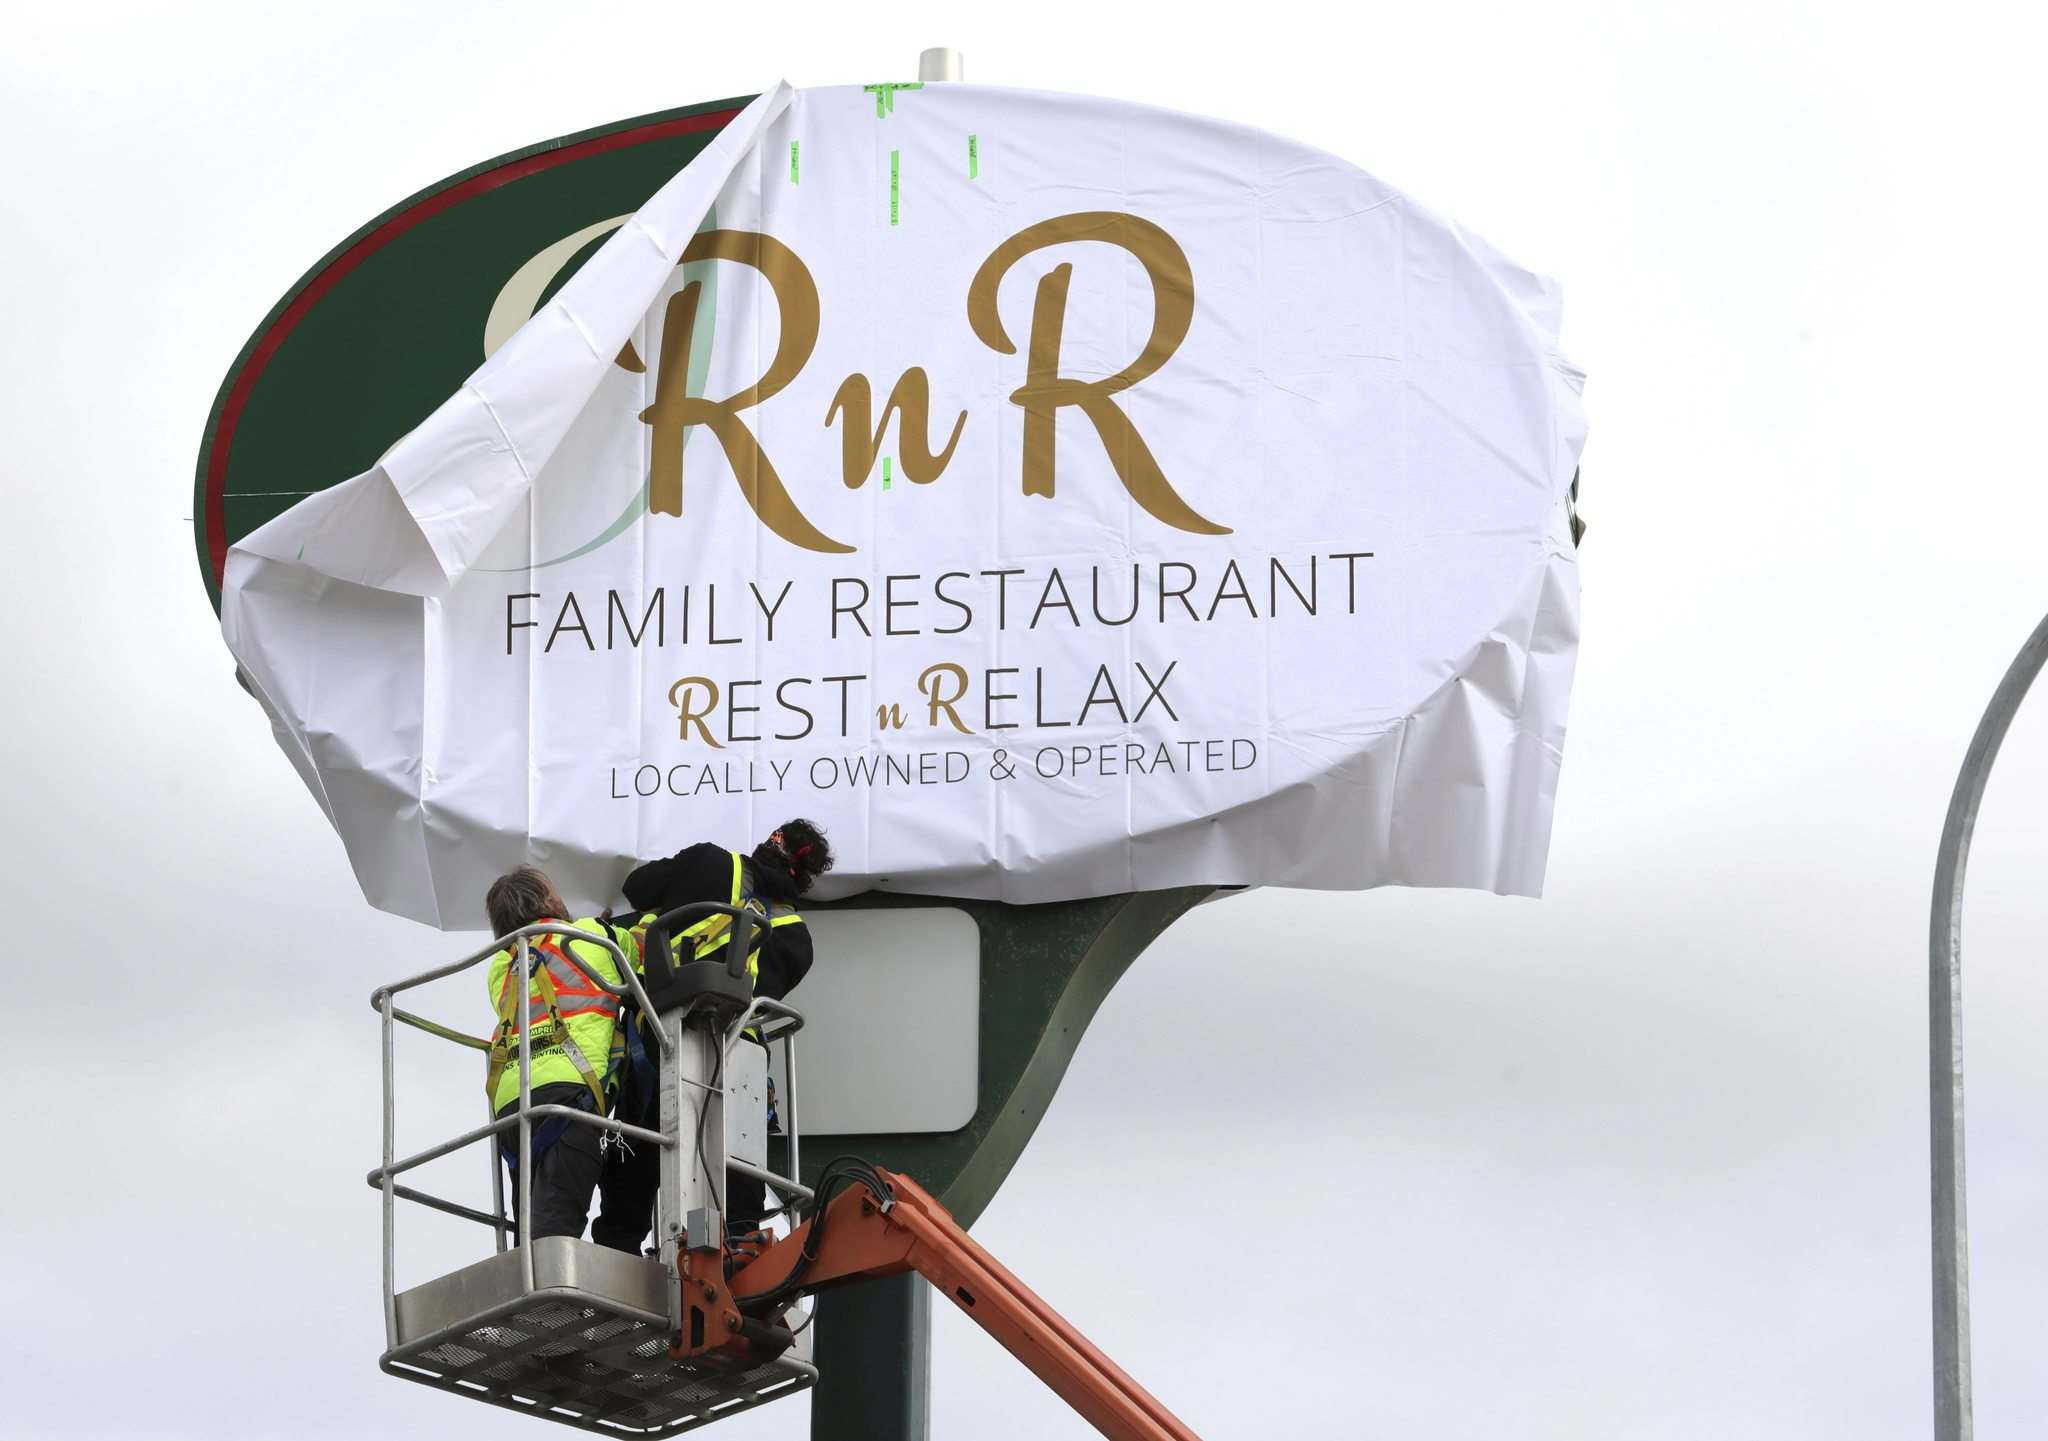 The renewed brand — RnR, for Rest and Relaxation — will look to maintain longtime customers while adding new options, such as enhanced vegetarian and gluten-free items. (Ruth Bonneville / Winnipeg Free Press)